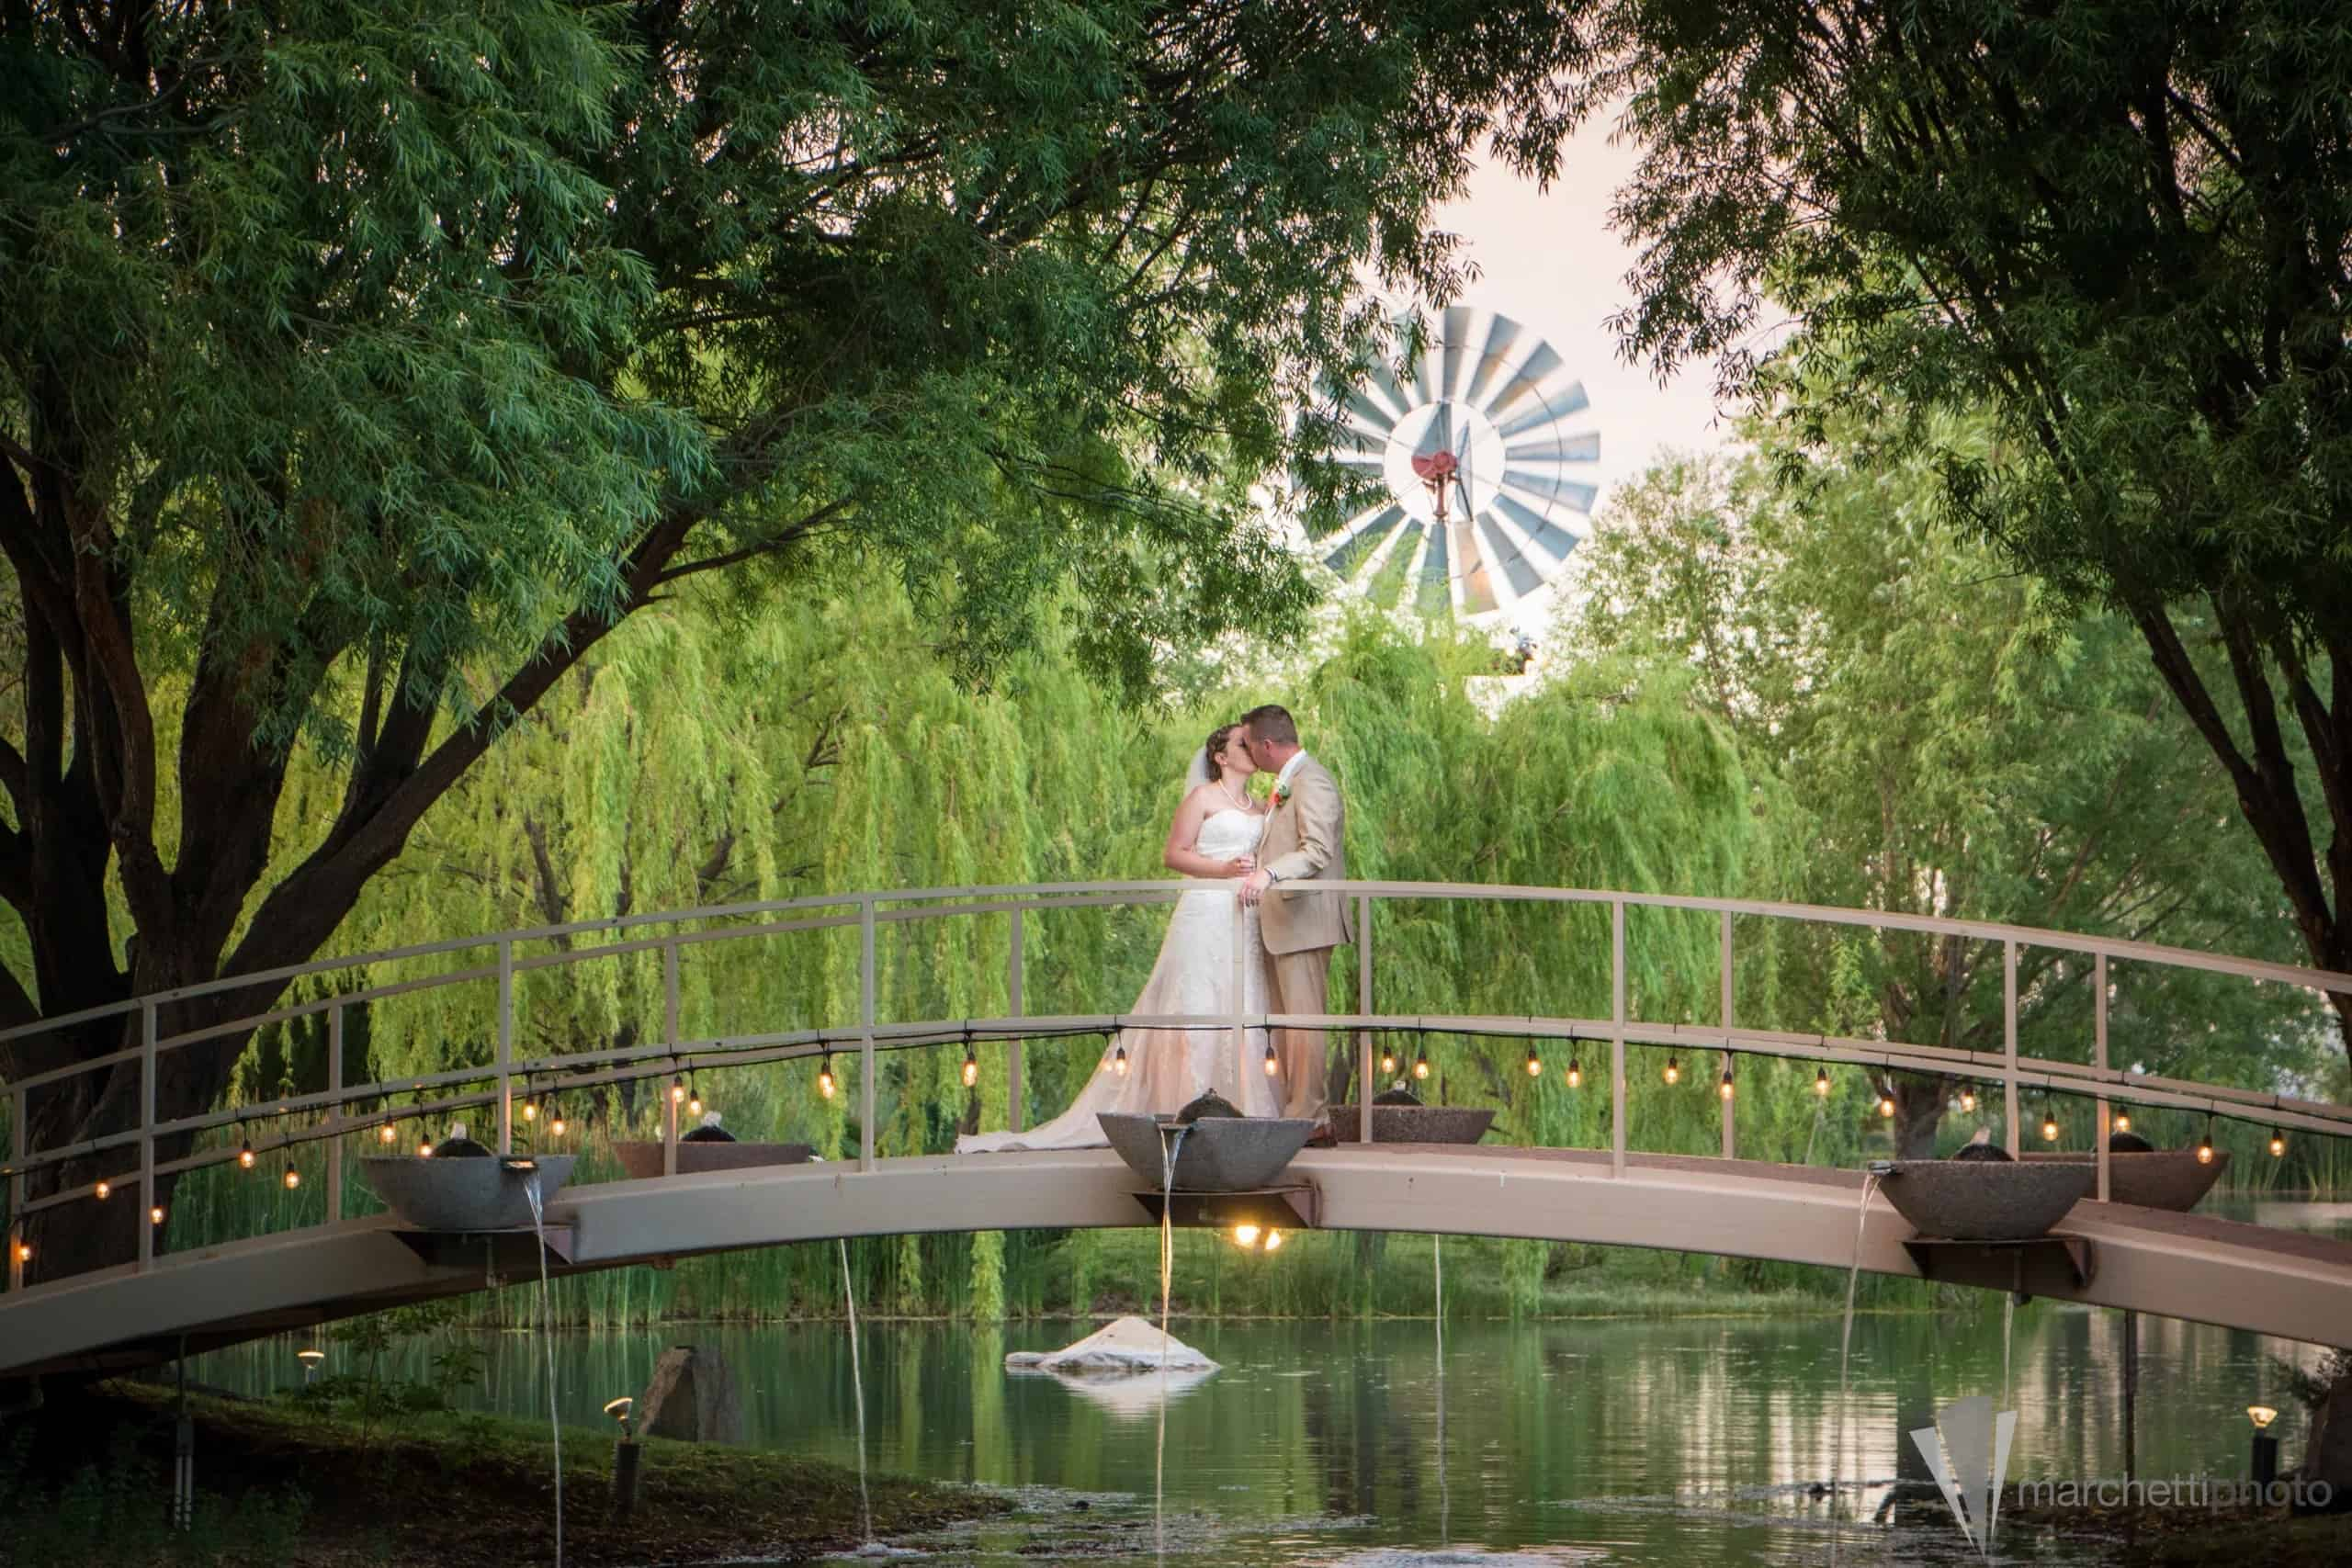 The Windmill House Wedding Venues in Arizona